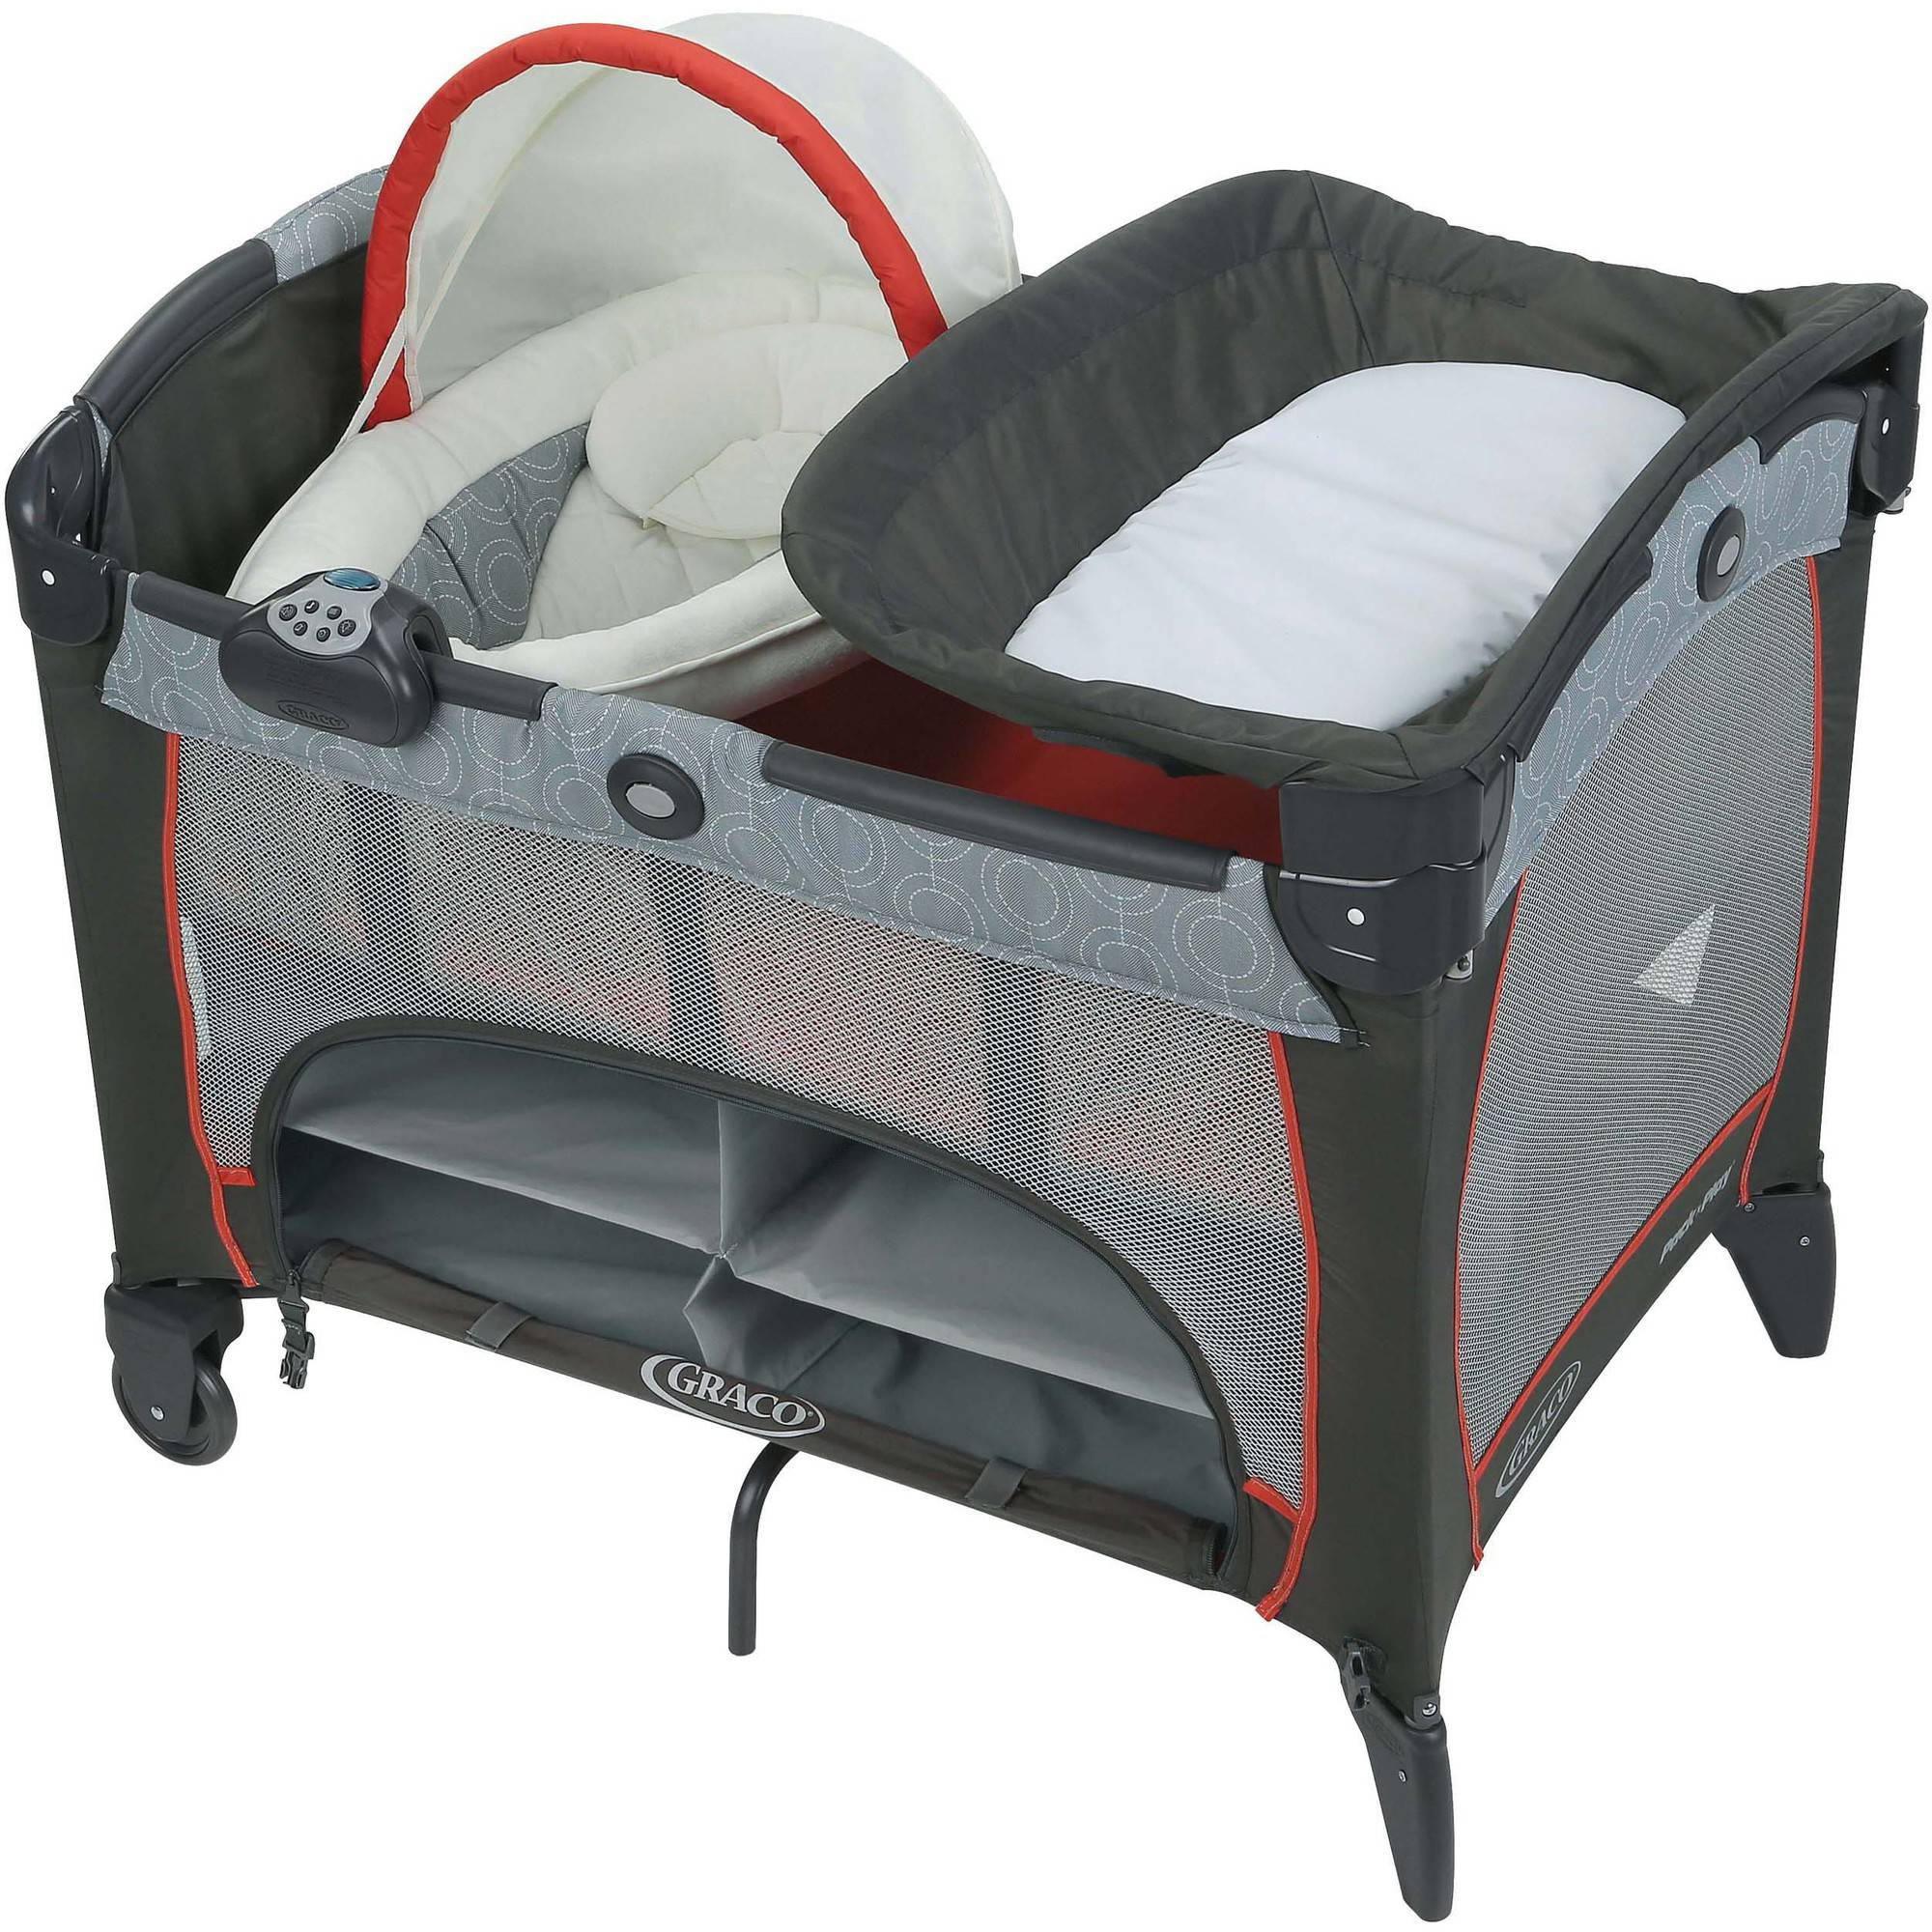 Graco Pack 'n Play Play Pen with Newborn Napper DLX, Solar by Graco